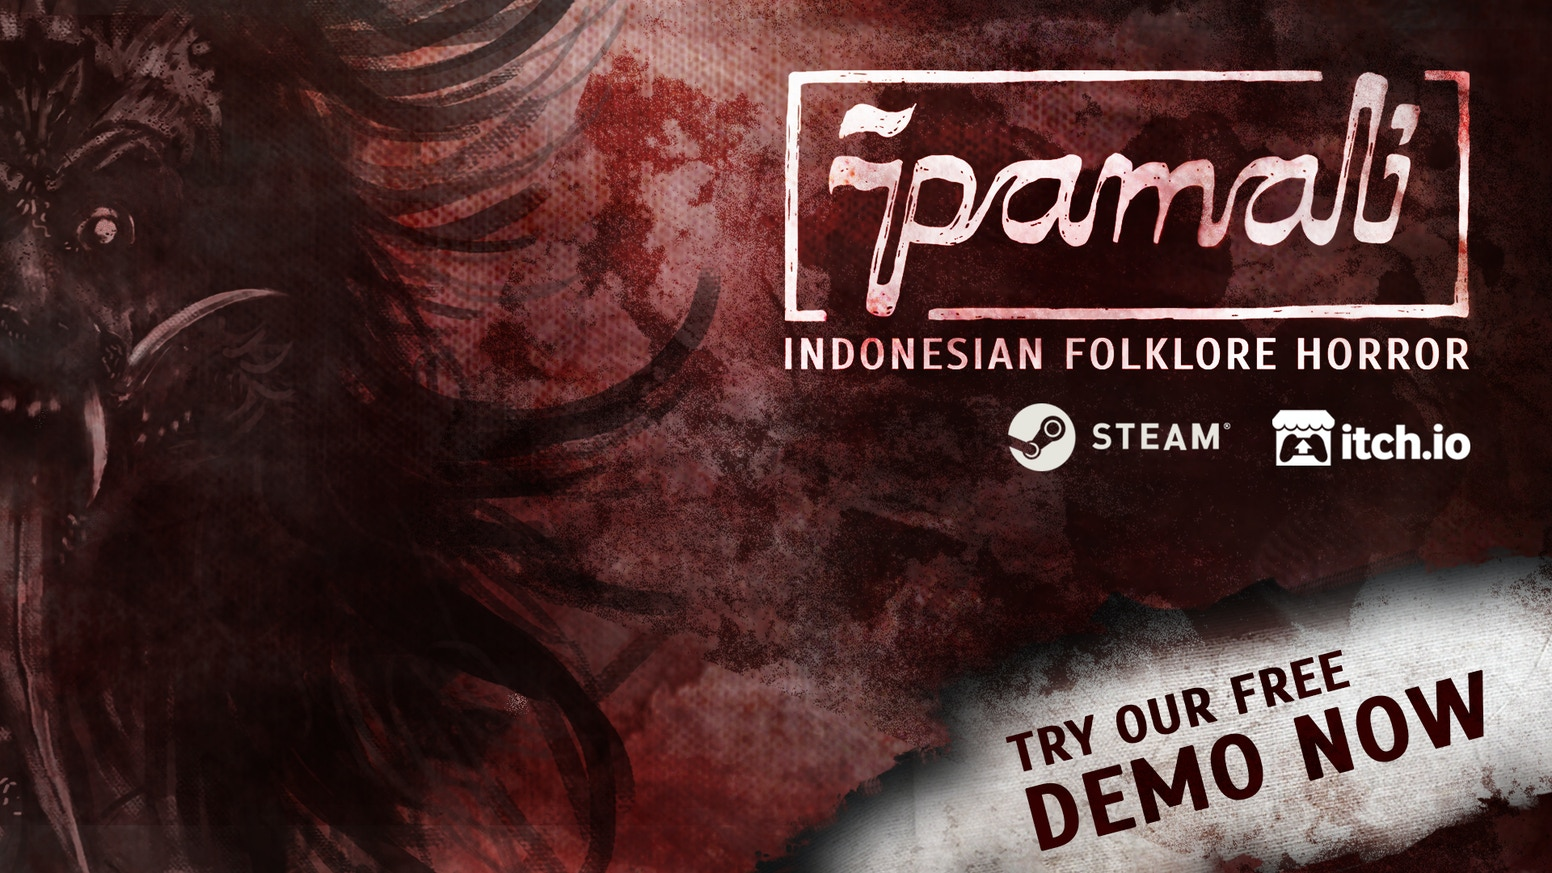 Through Pamali's dynamic horror engine, everyone has a unique take on Indonesian taboos and culture that shapes the horror itself.